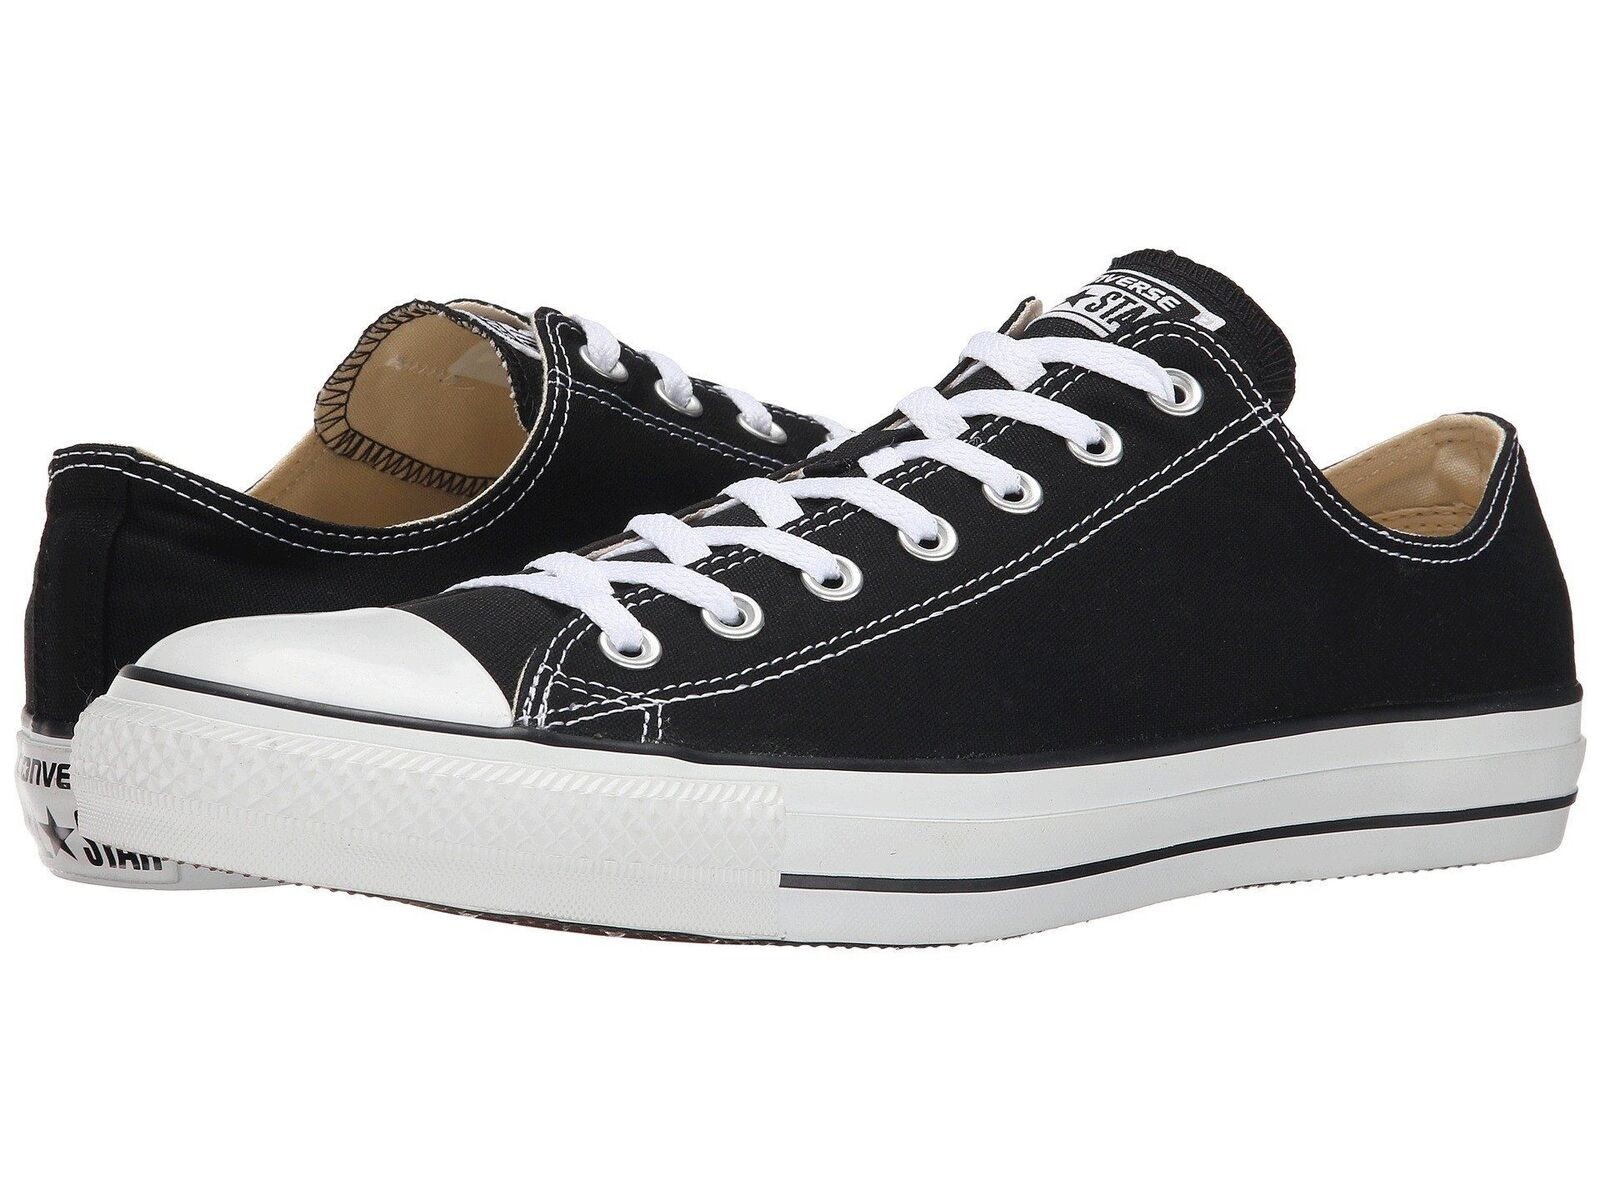 Converse Chuck Taylor All Star Ox Black M9166 Black